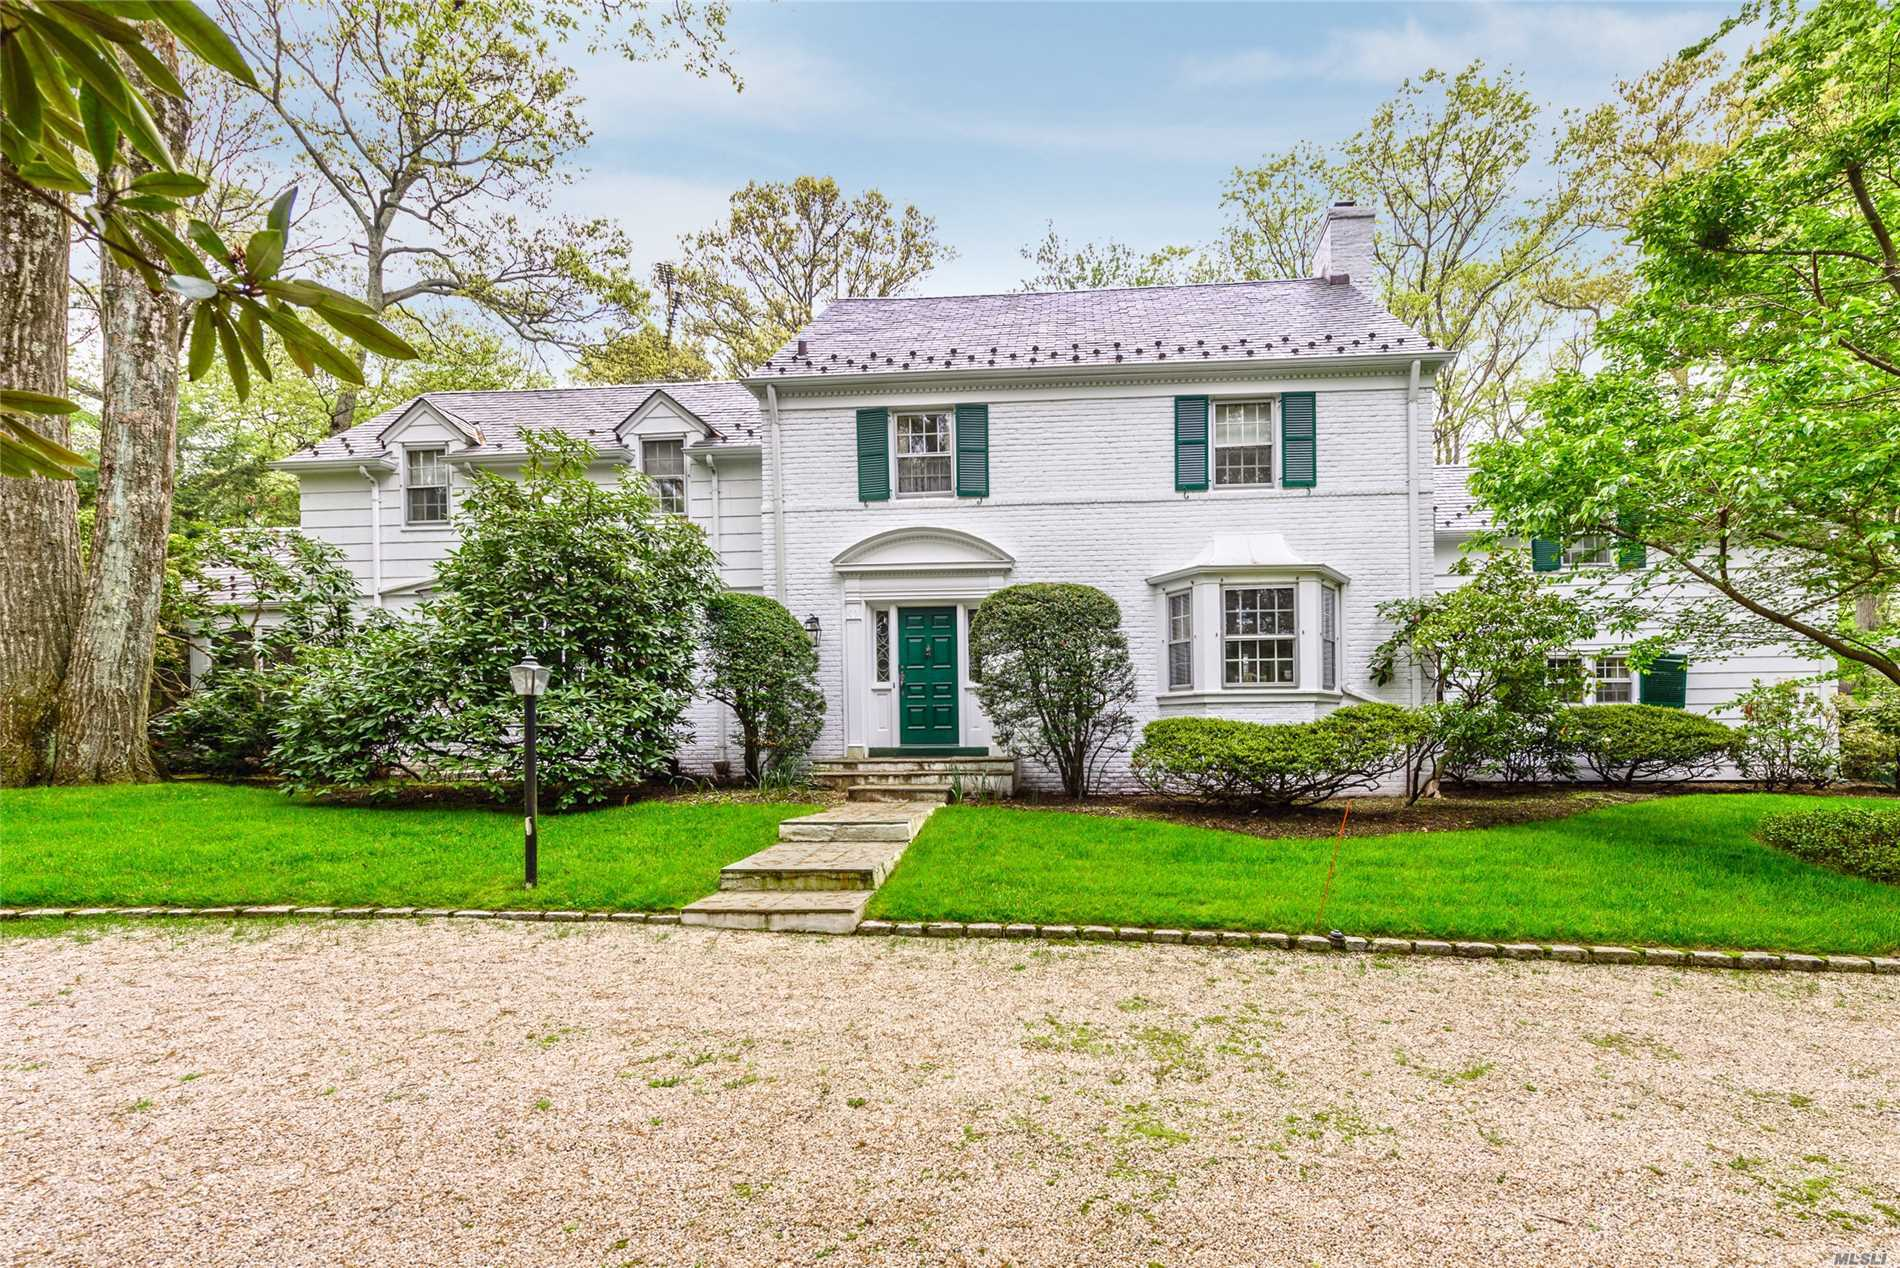 Brookville. Brookville Classic Slate-Roofed Center Hall Colonial. Circular Driveway leads to this 5 Bedroom, 4 Bath Home on a Prime 2.5 Acre lot with a Pool, 3-Car Garage, Front and Back Staircase, Hardwood Floors, 3 Fireplaces.